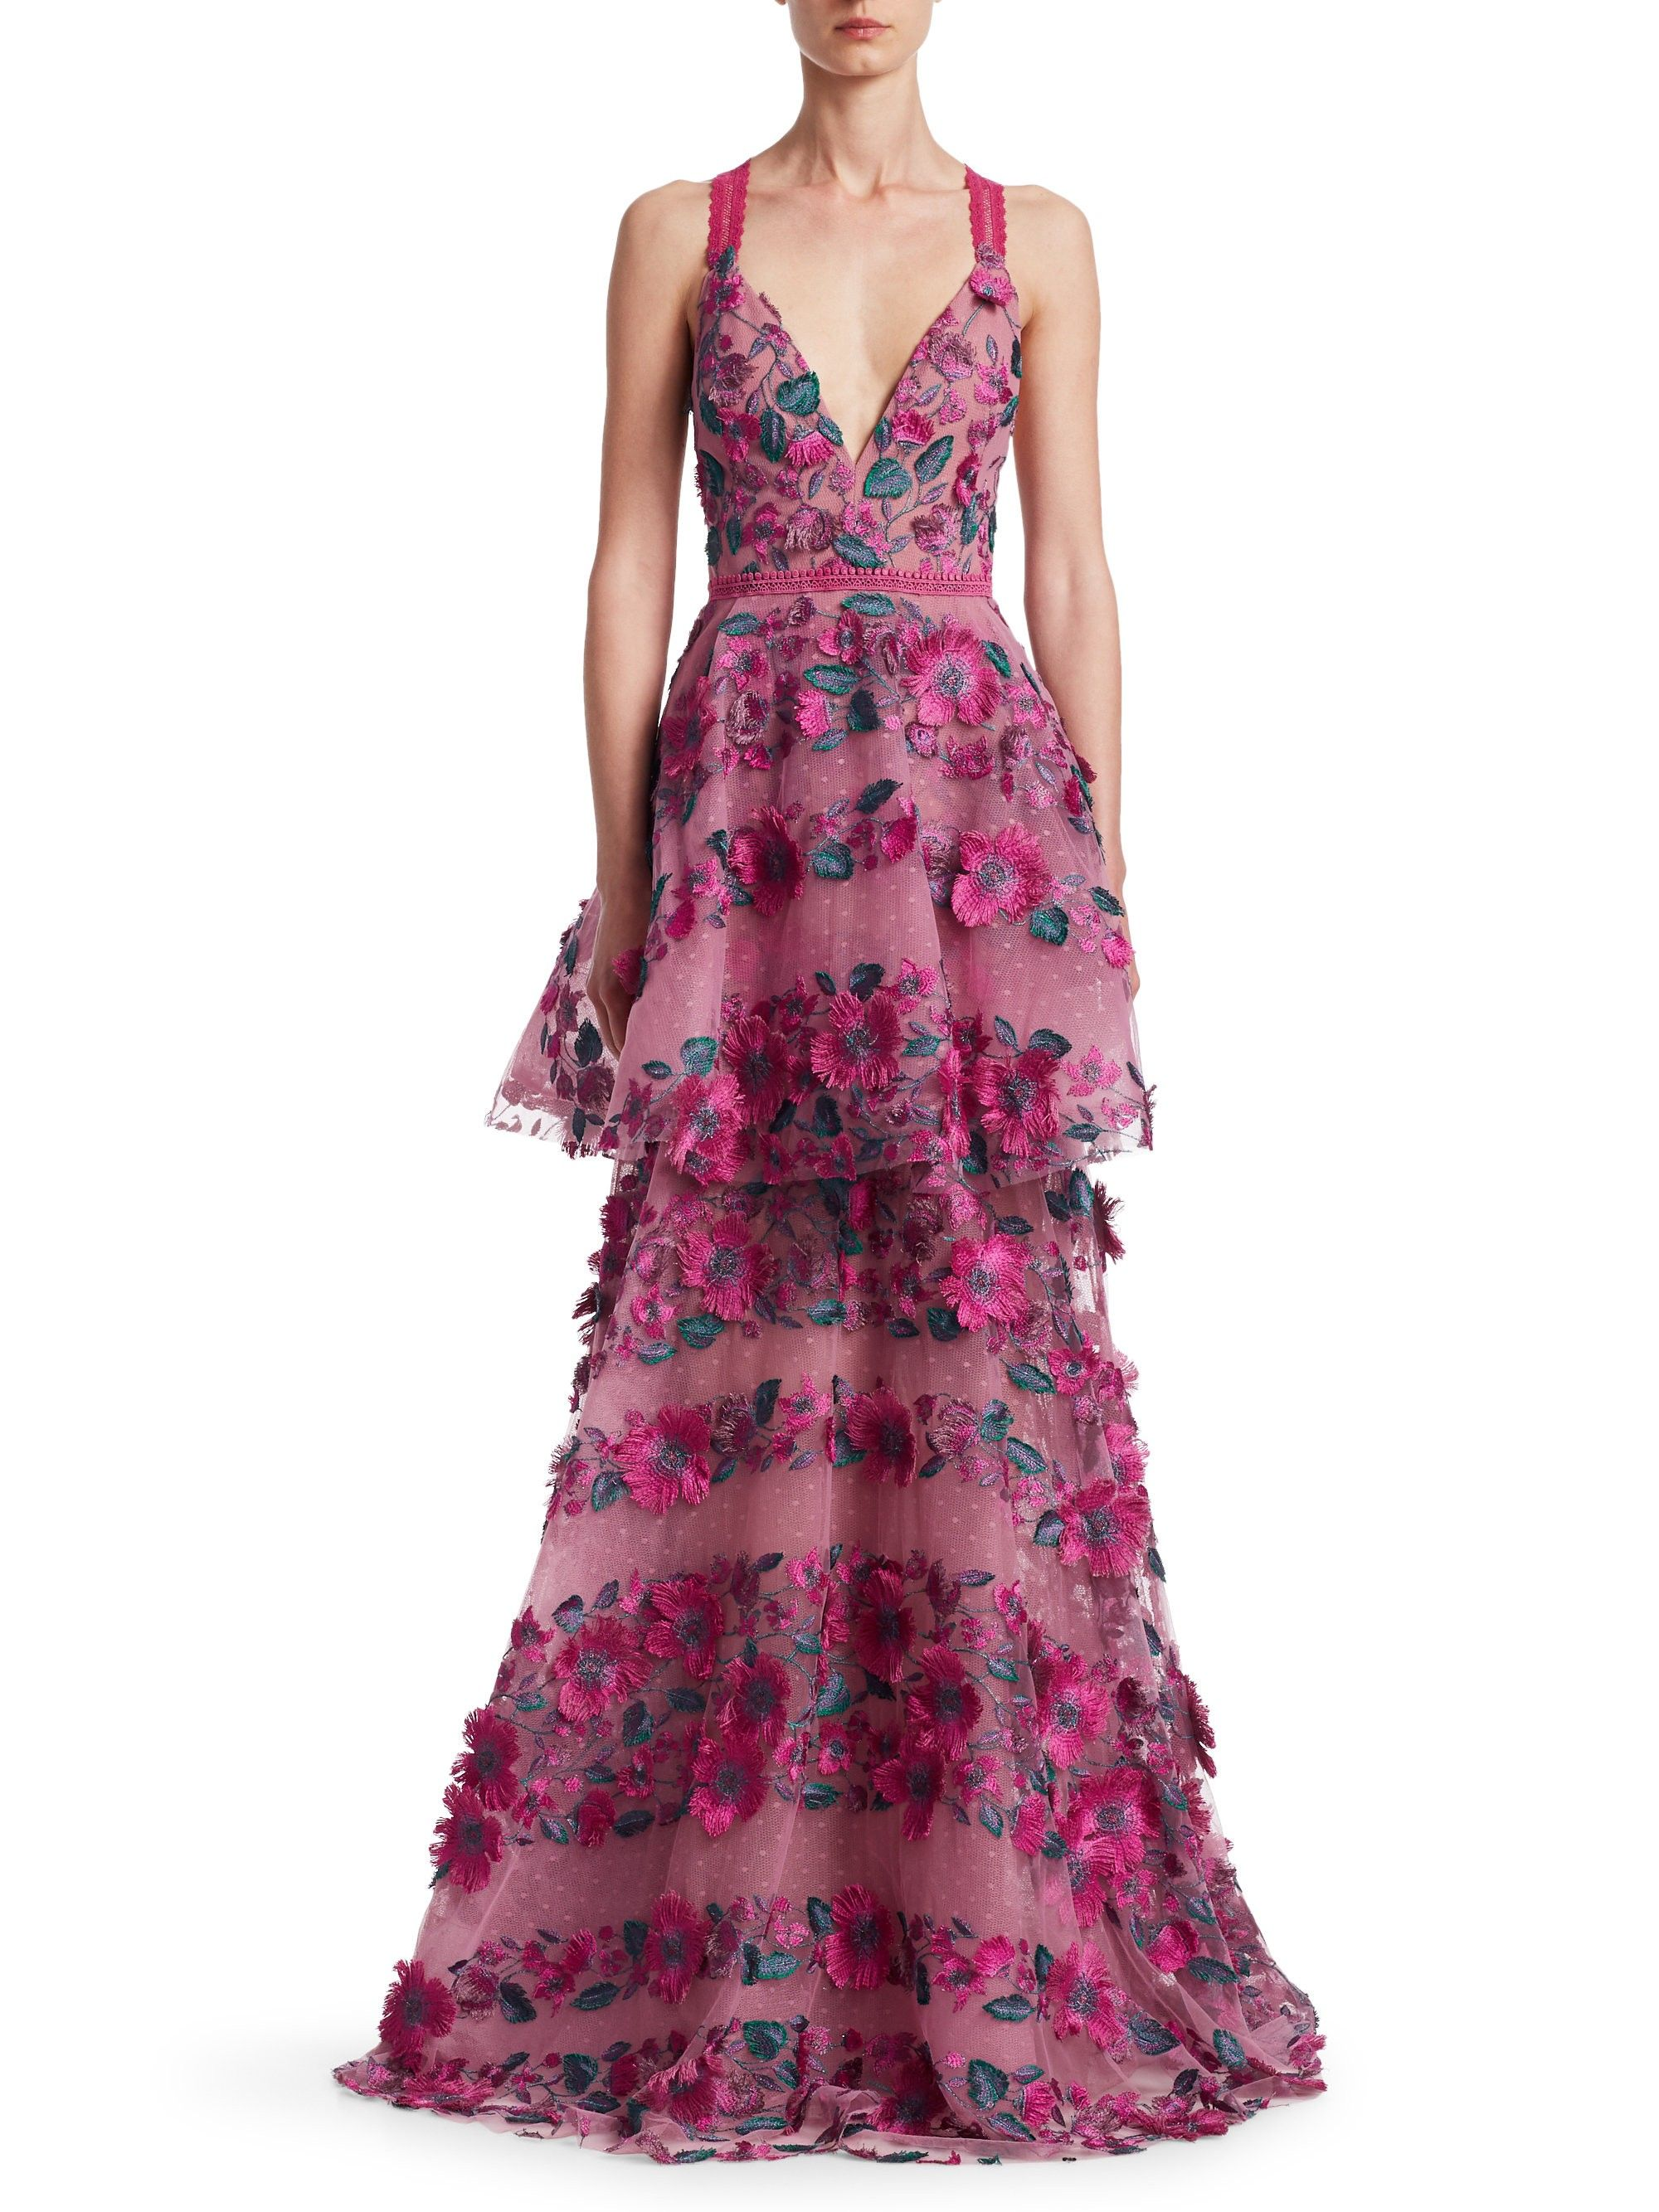 79f252b6 Marchesa Notte Floral Embroidered Tiered Mesh Gown - Pink 14 in 2019 ...